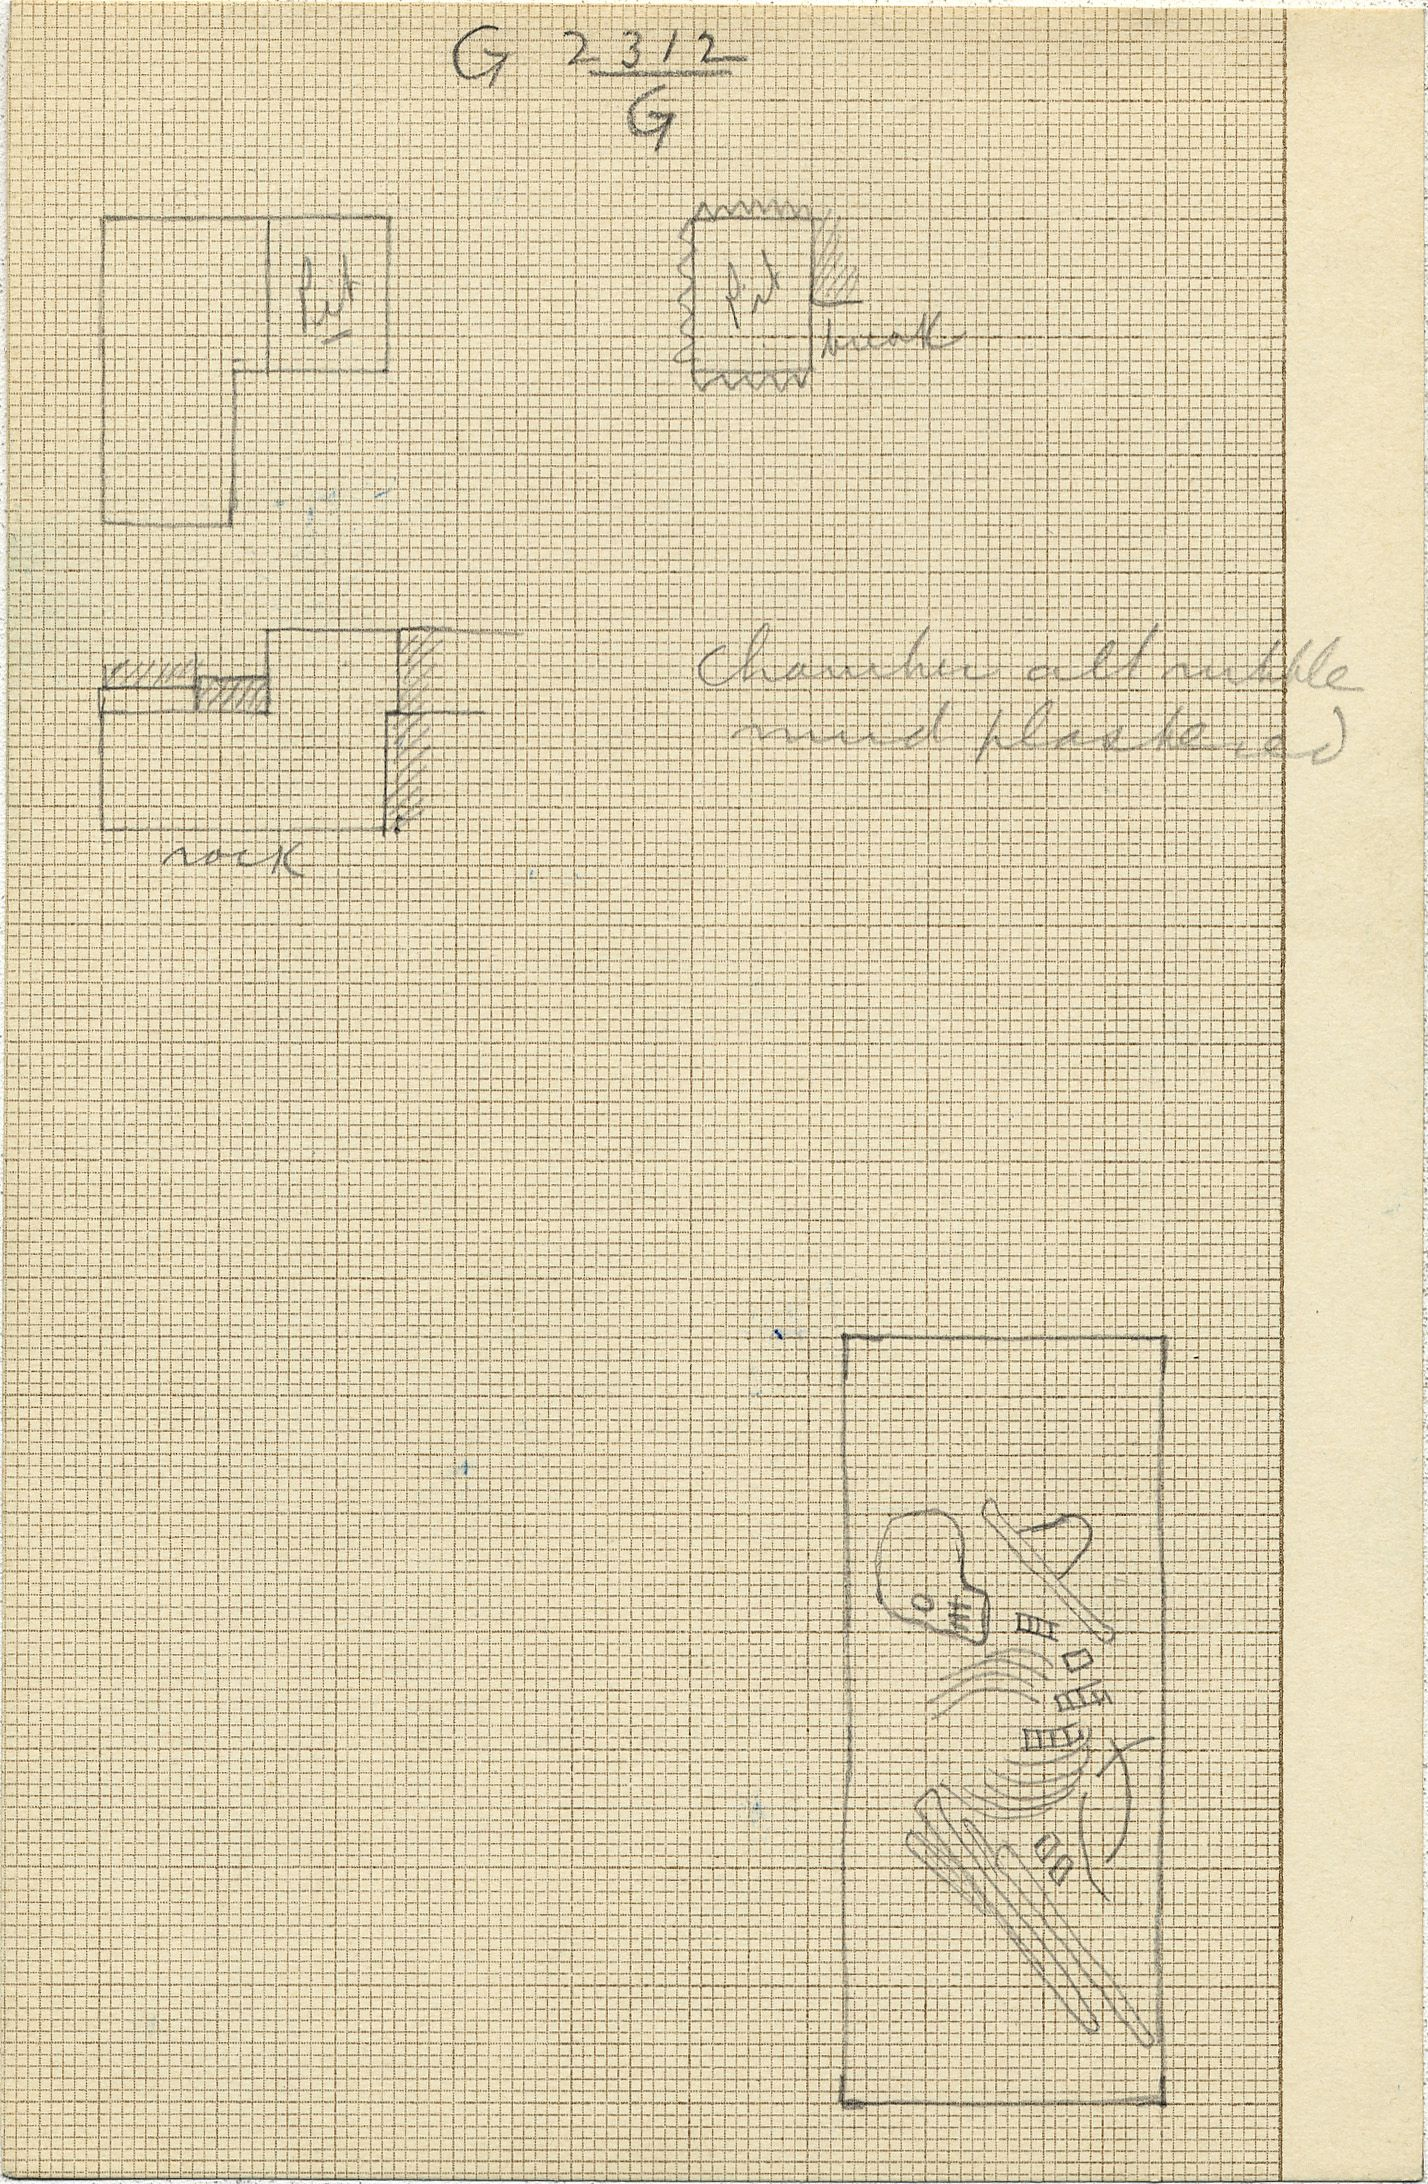 Maps and plans: G 2312, Shaft G